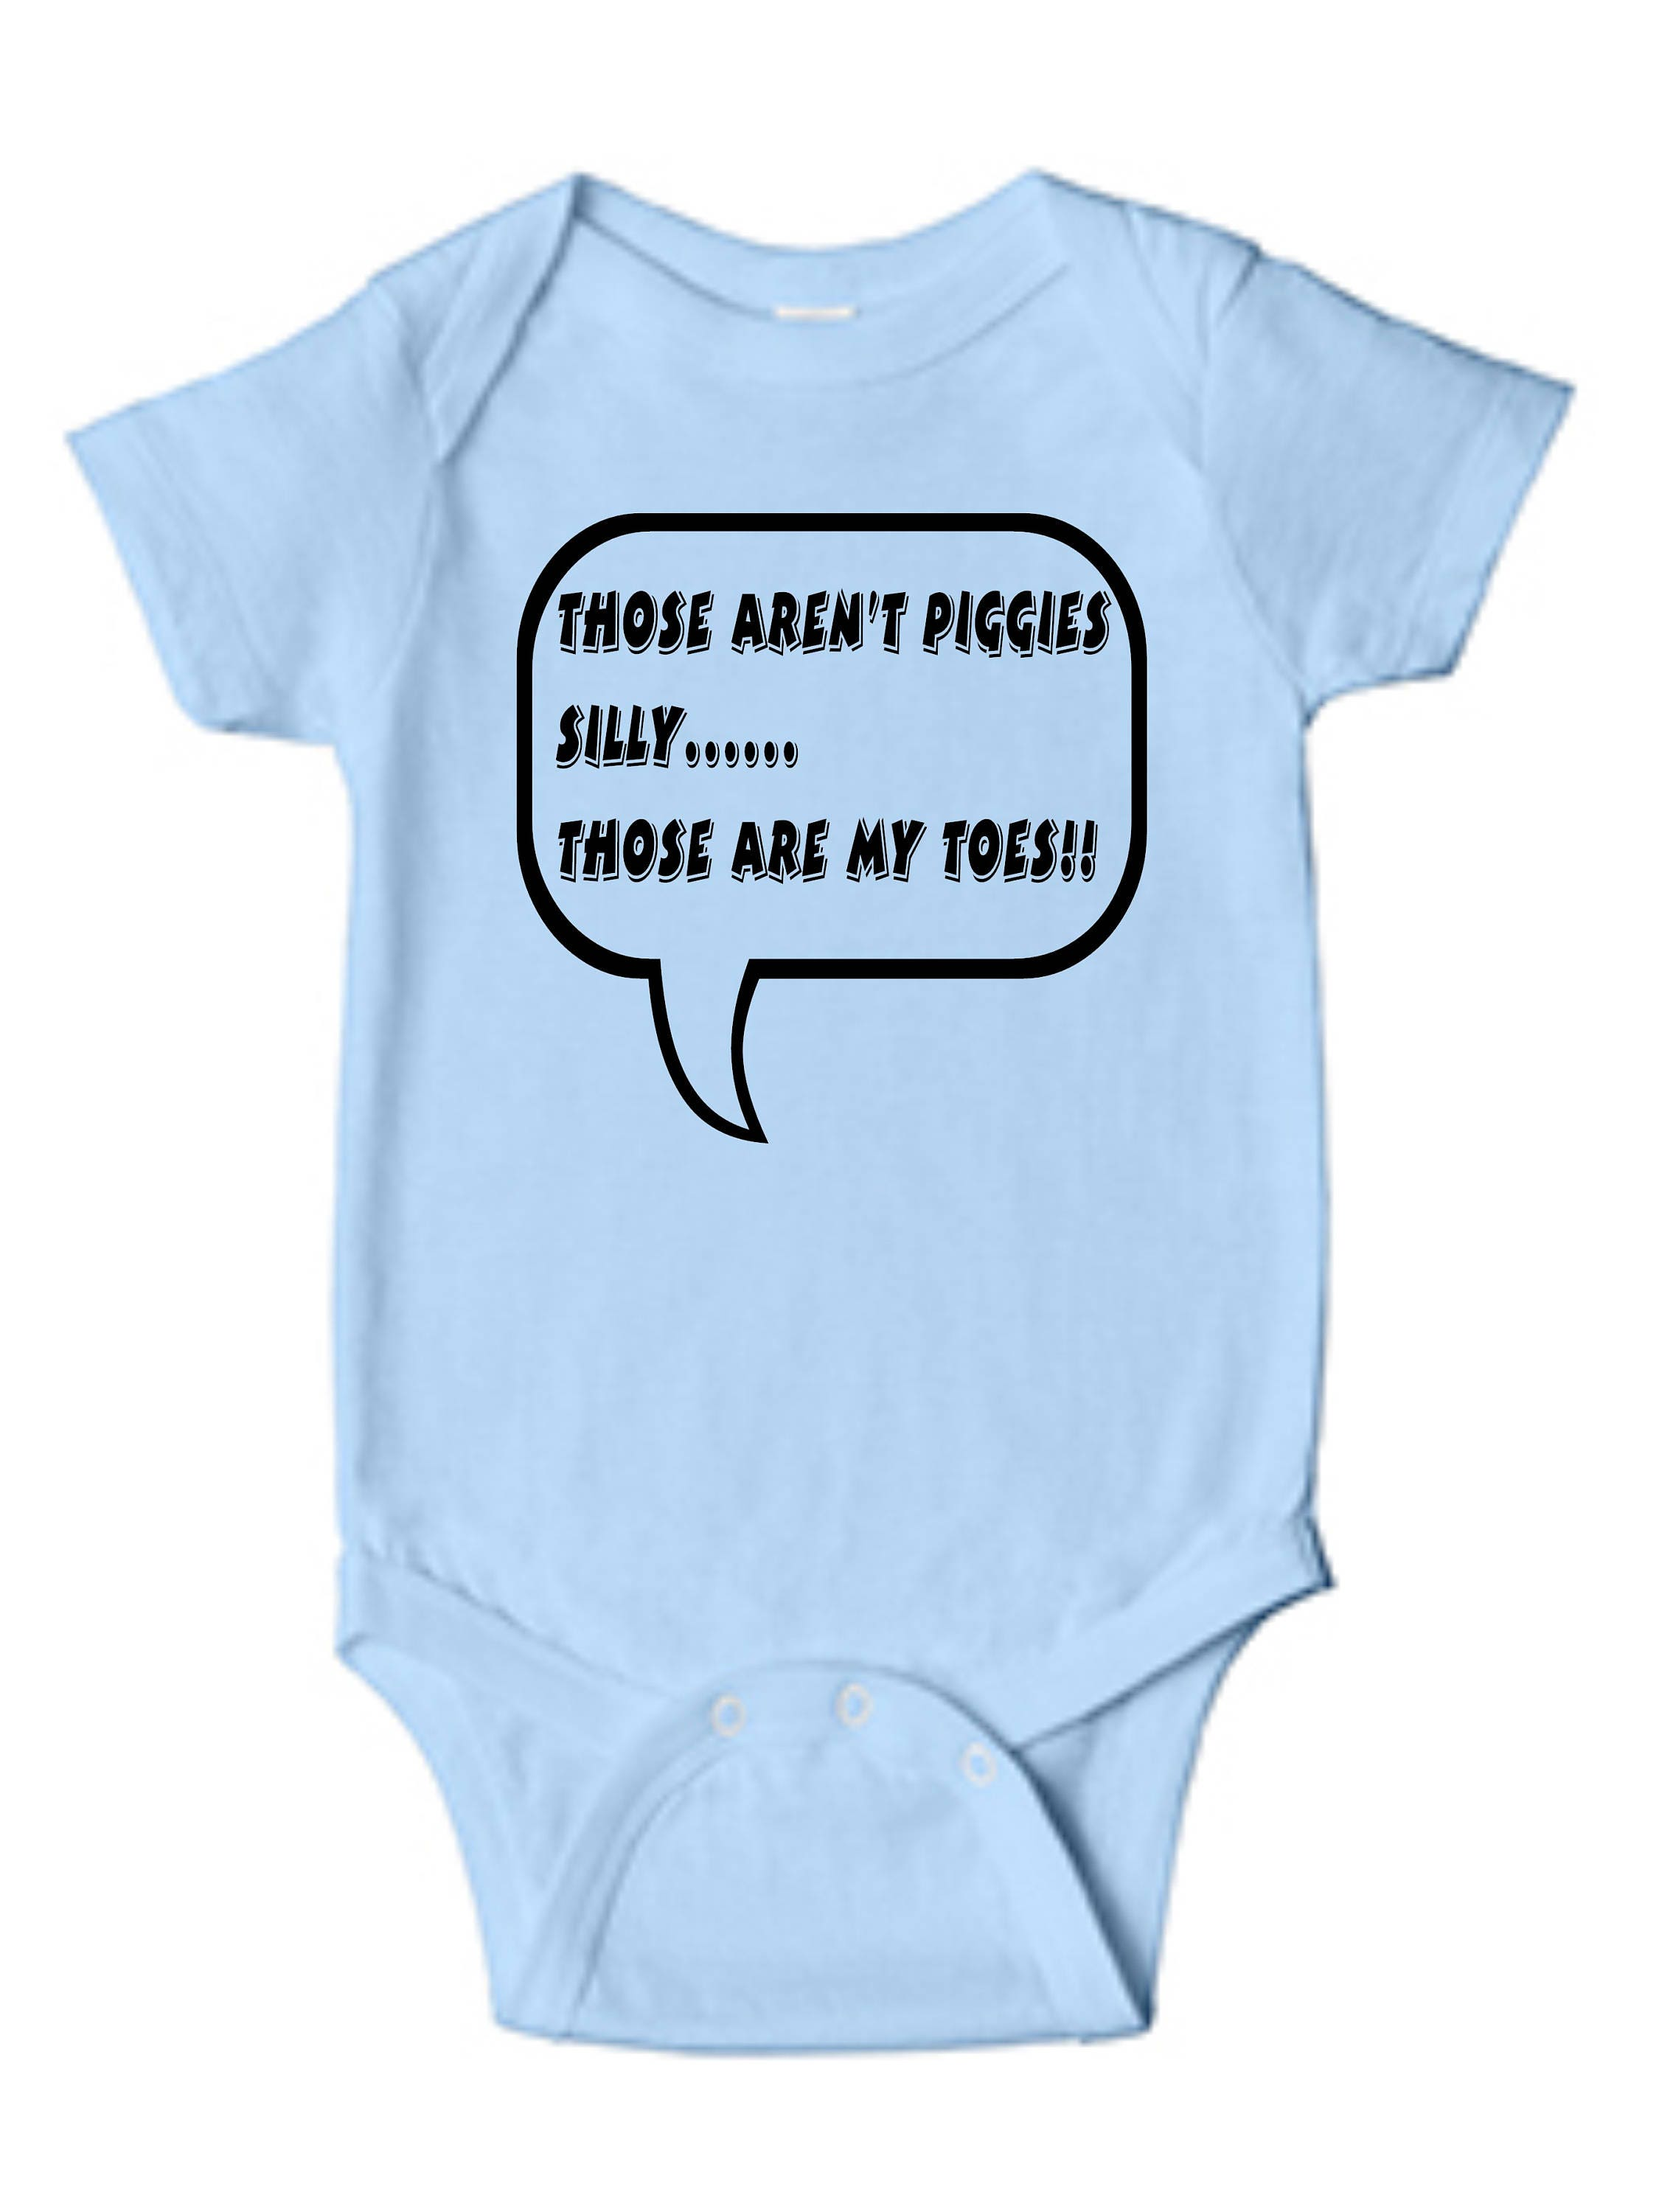 Those Arent Piggies Silly Those are My Toes Baby Vests Bodysuits Boys Girls